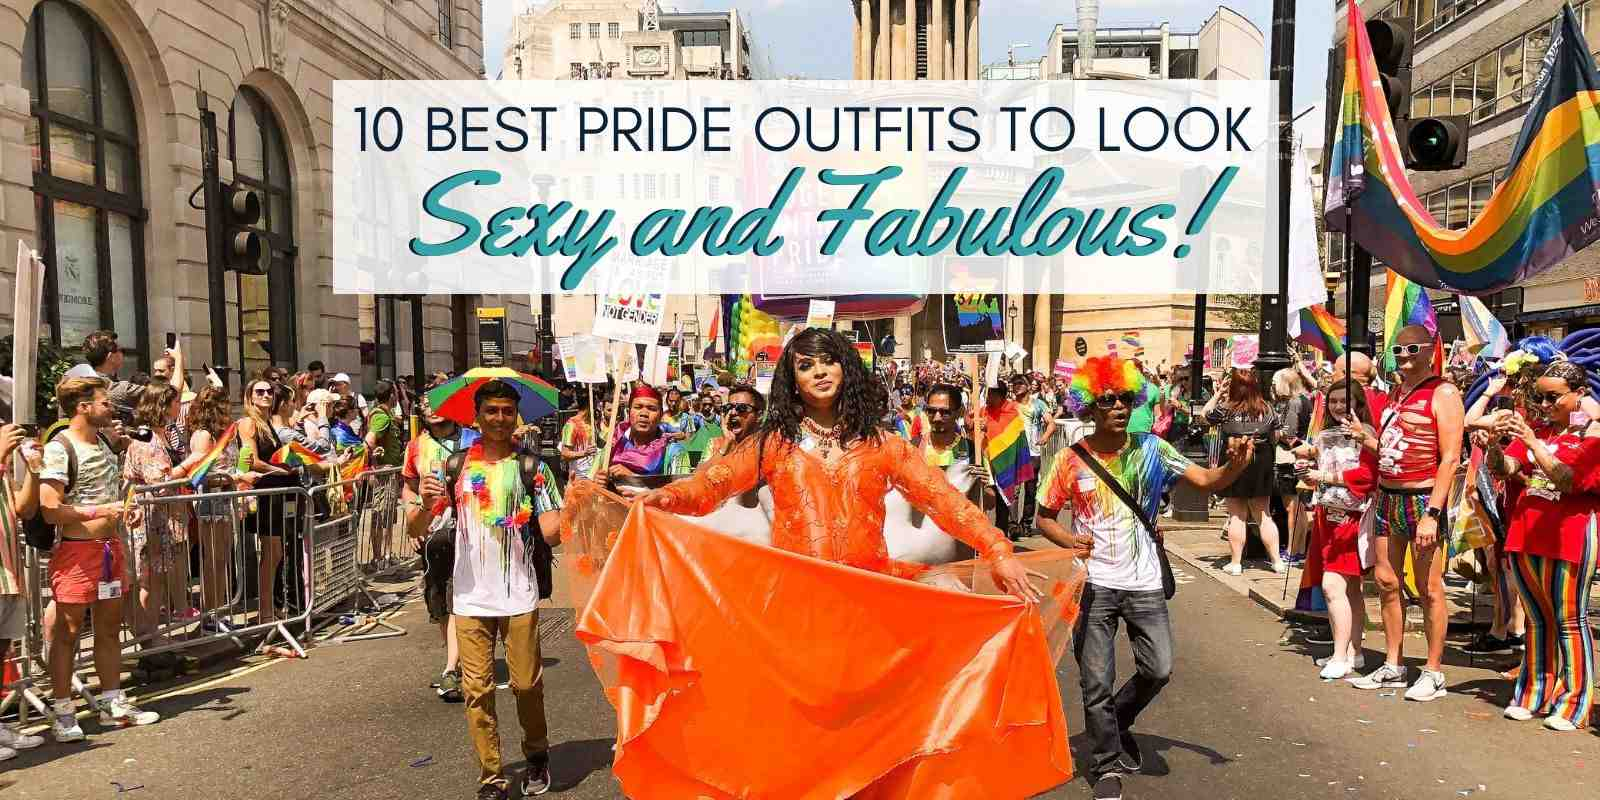 The 10 best pride outfits to wear so you look sexy and fabulous!